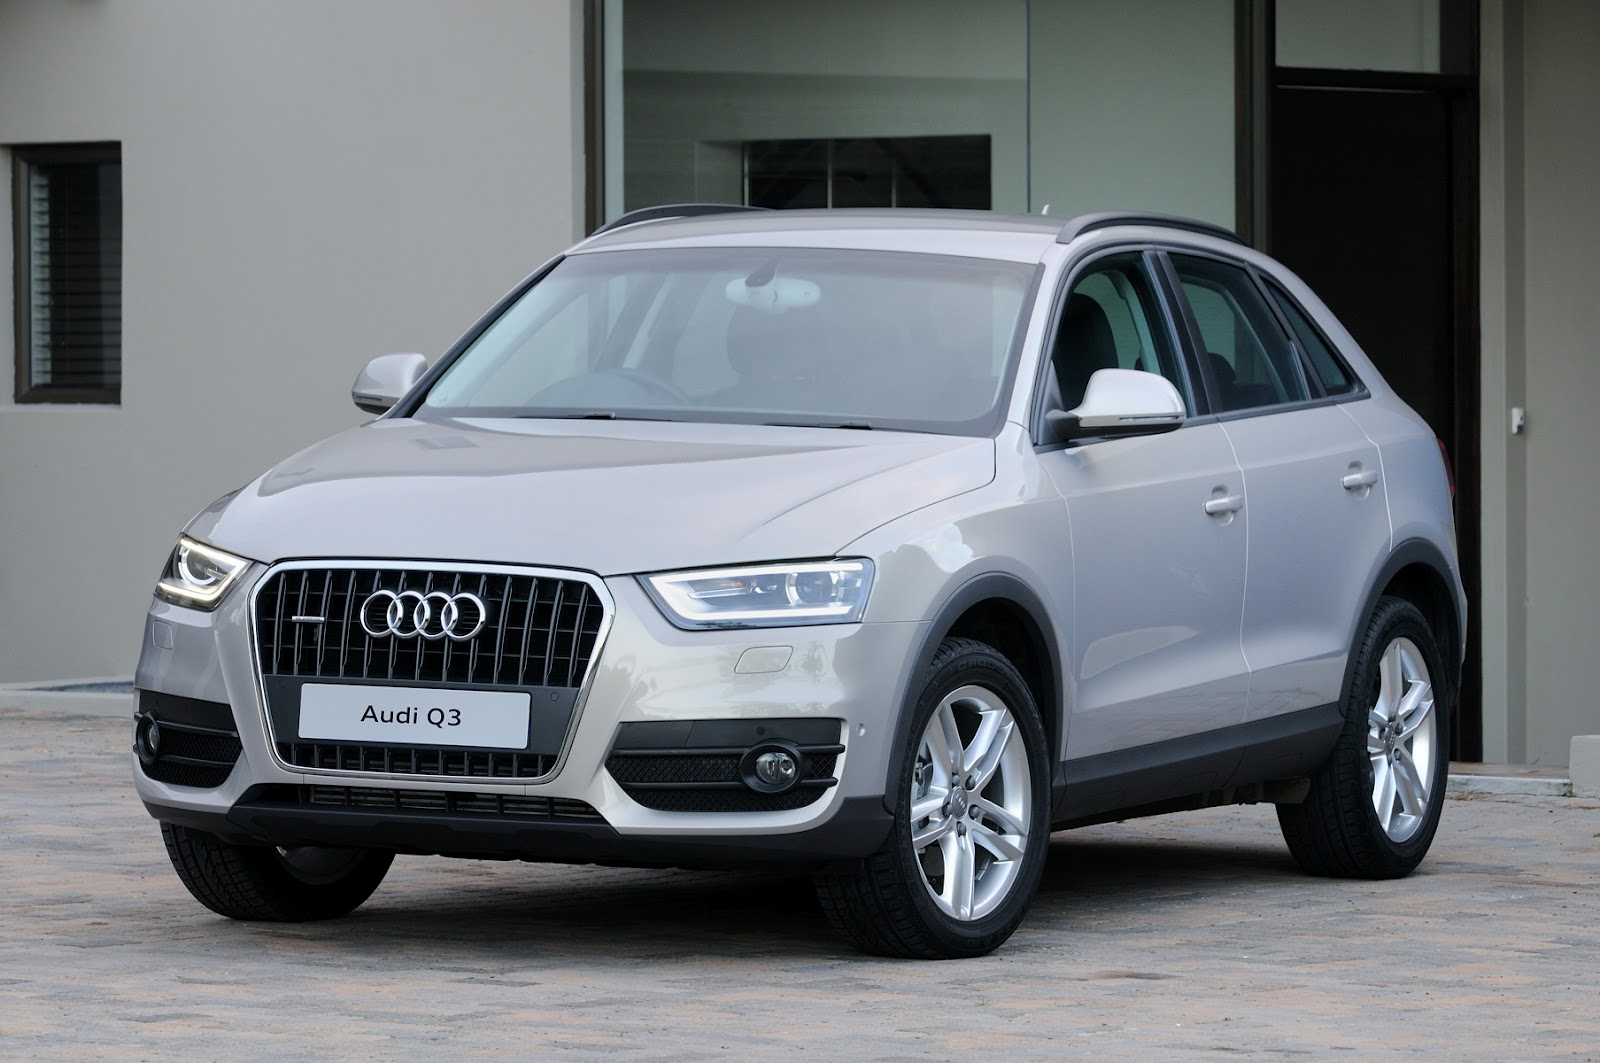 Expensive Sports Cars 2012 IN4RIDE: SWEET AUDI Q3...